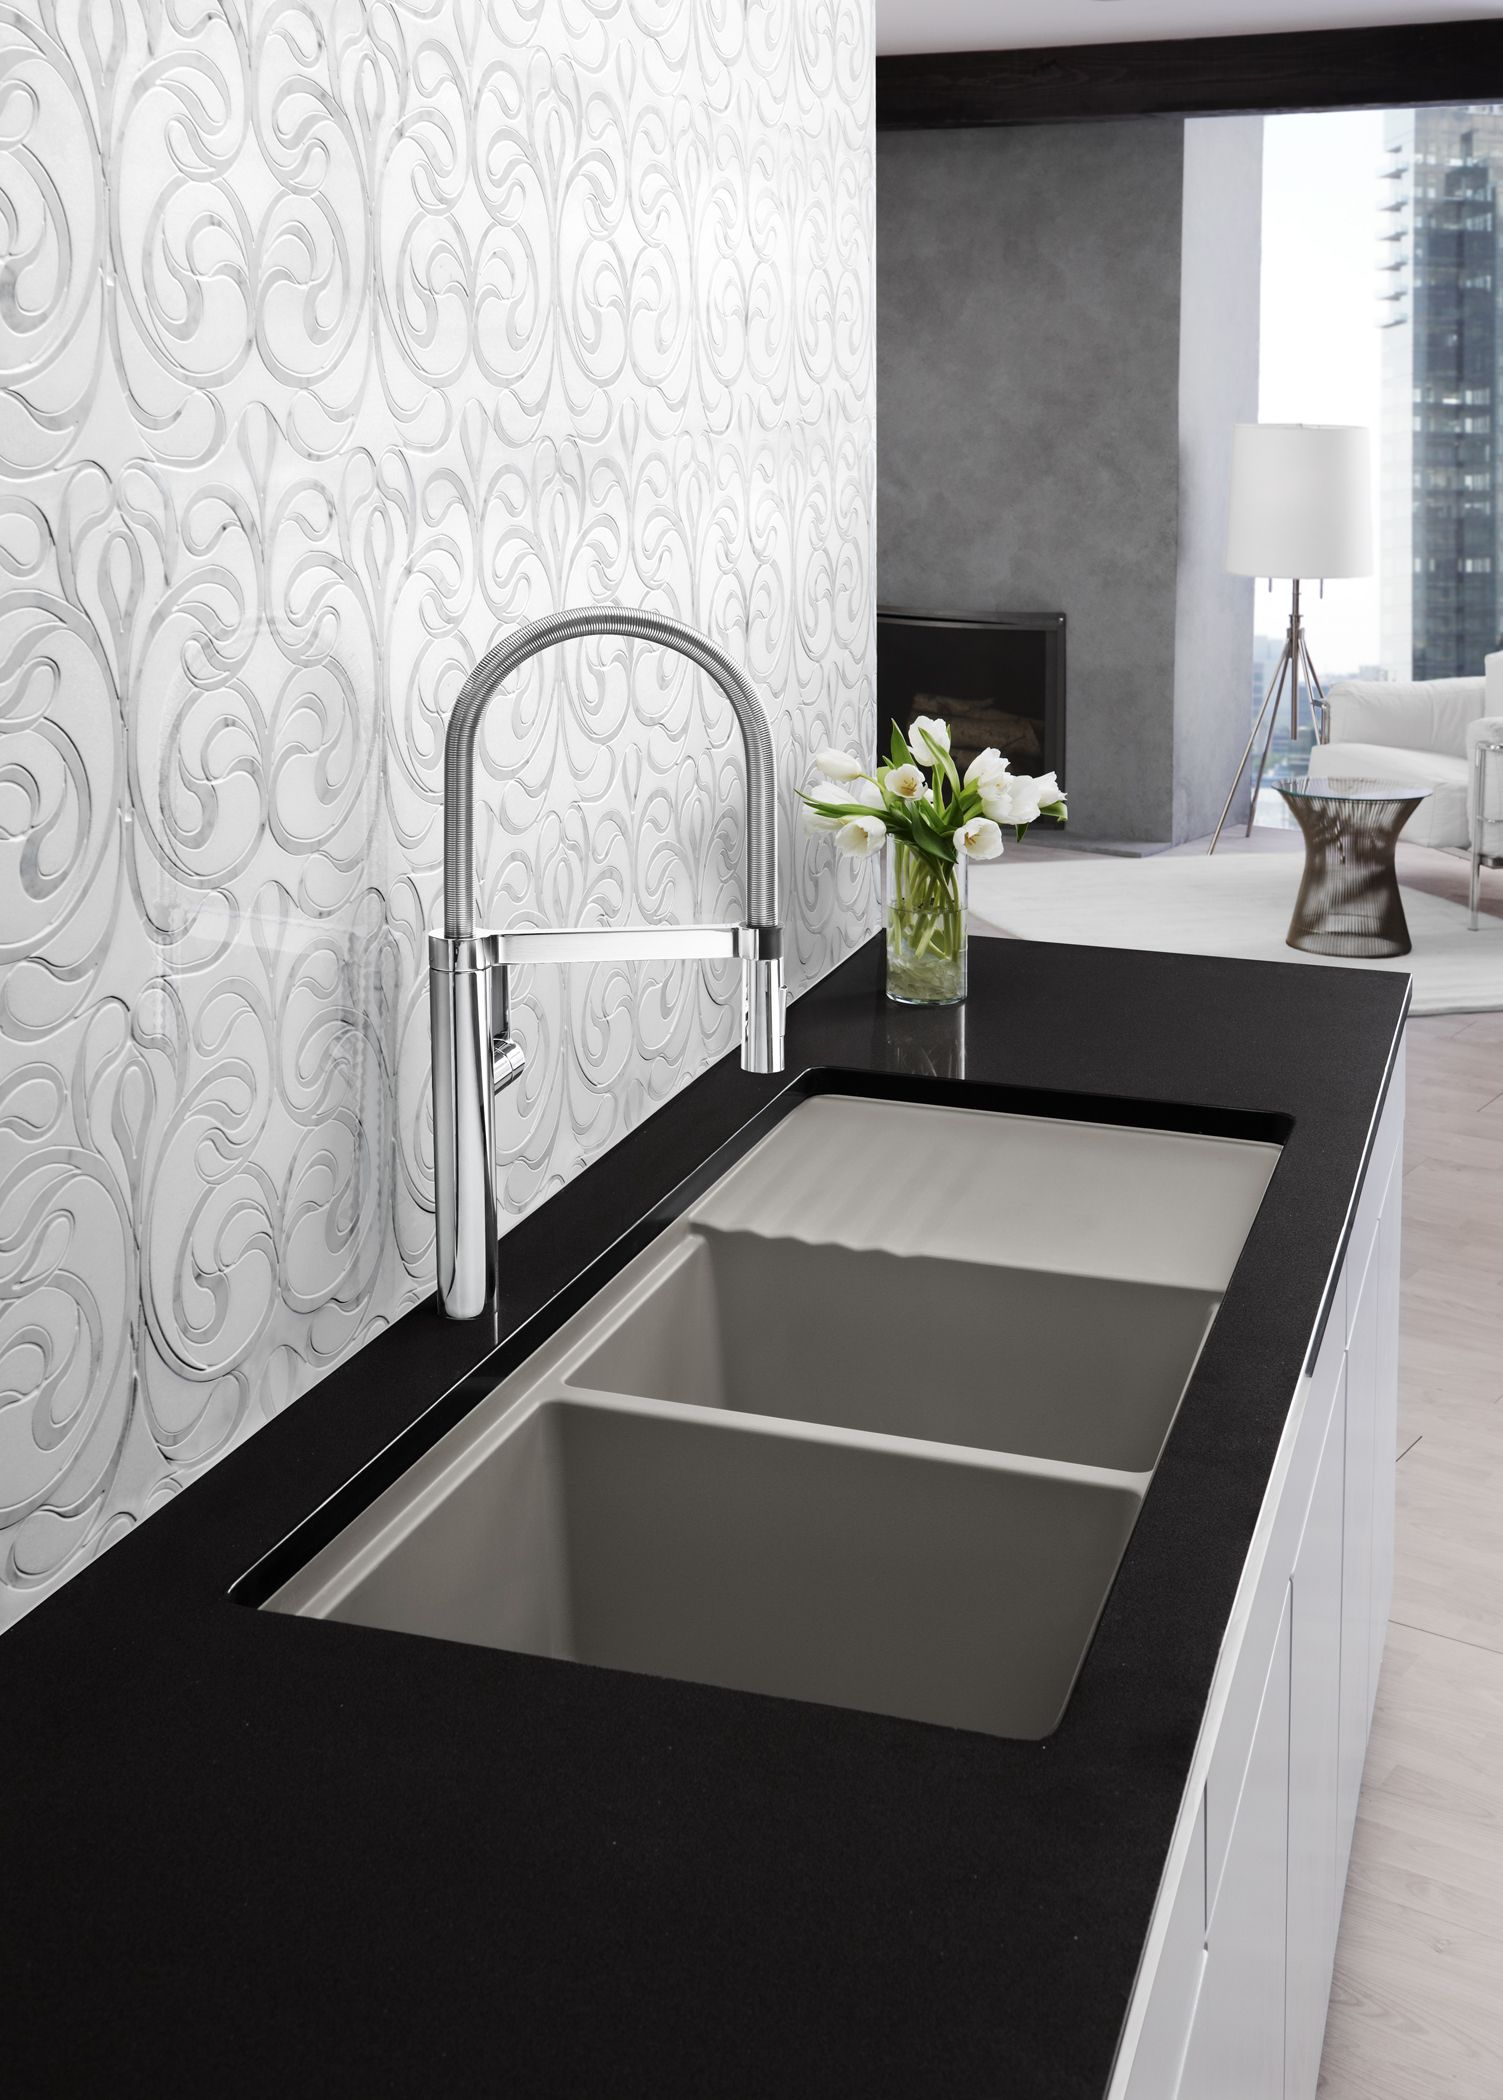 kitchen designs blanco truffle faucet and sink pictures sinks lowes ...